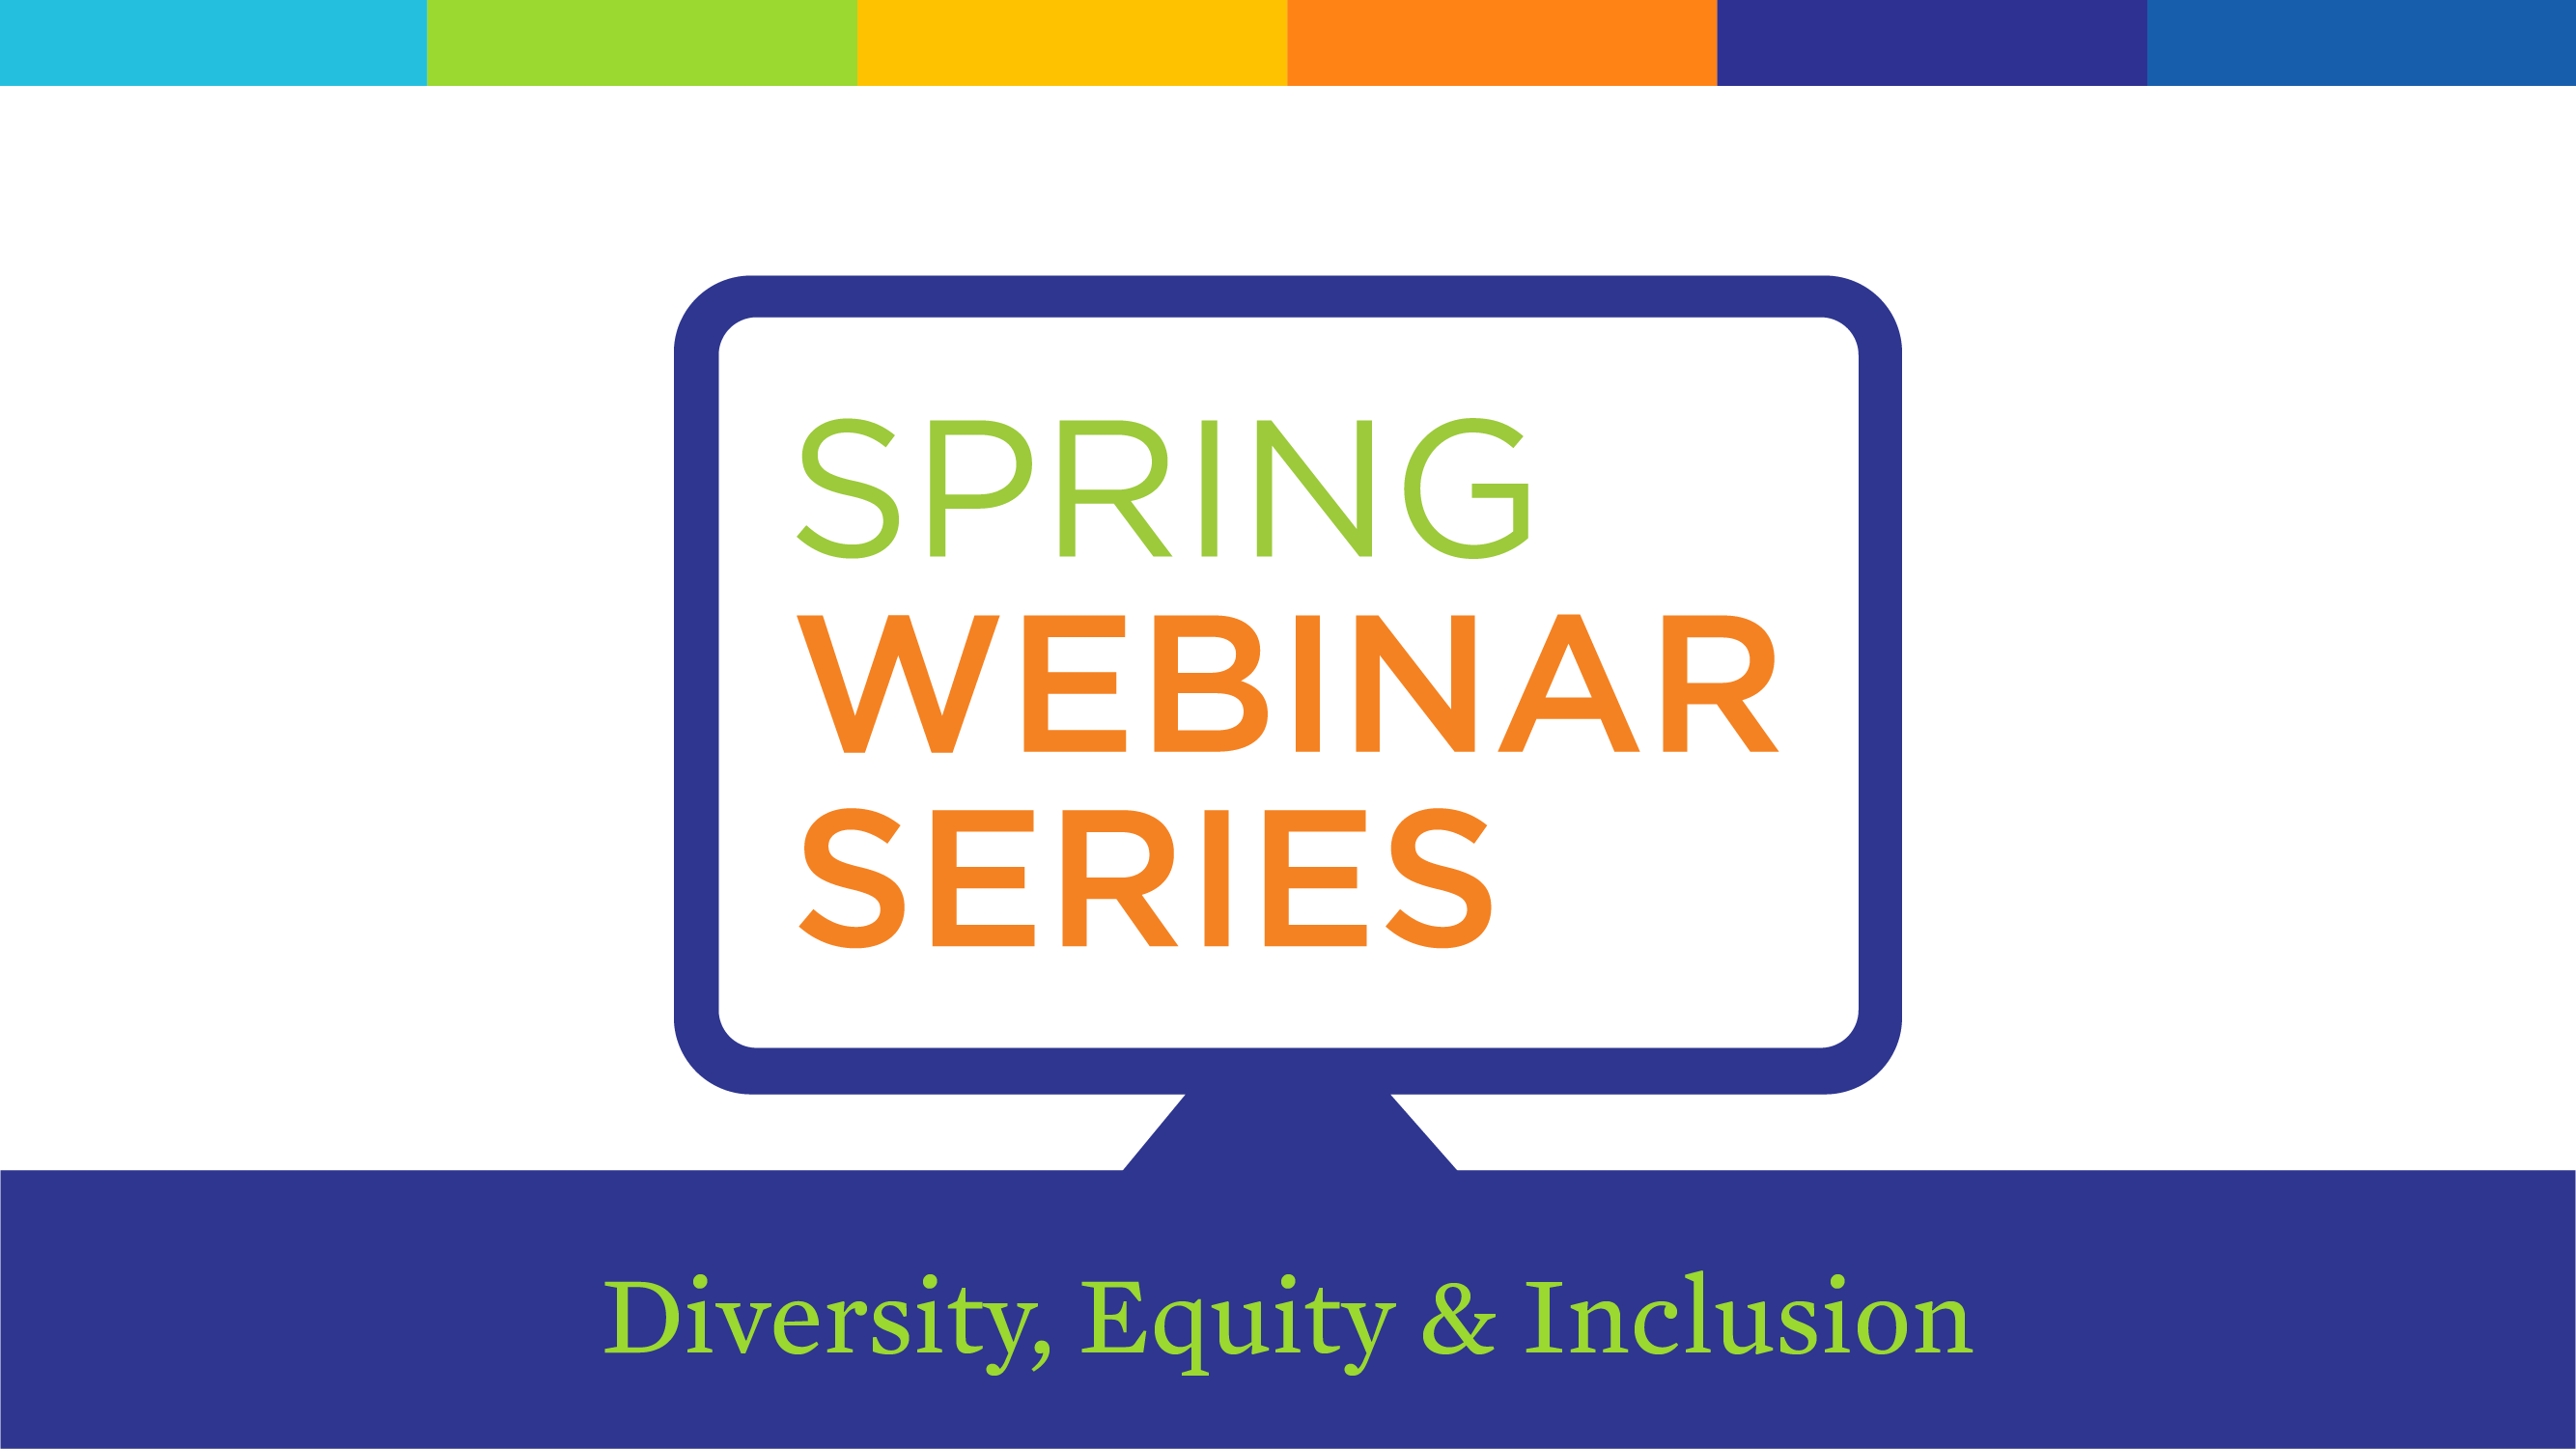 Spring Webinar Series - Diversity, Equity and Inclusion